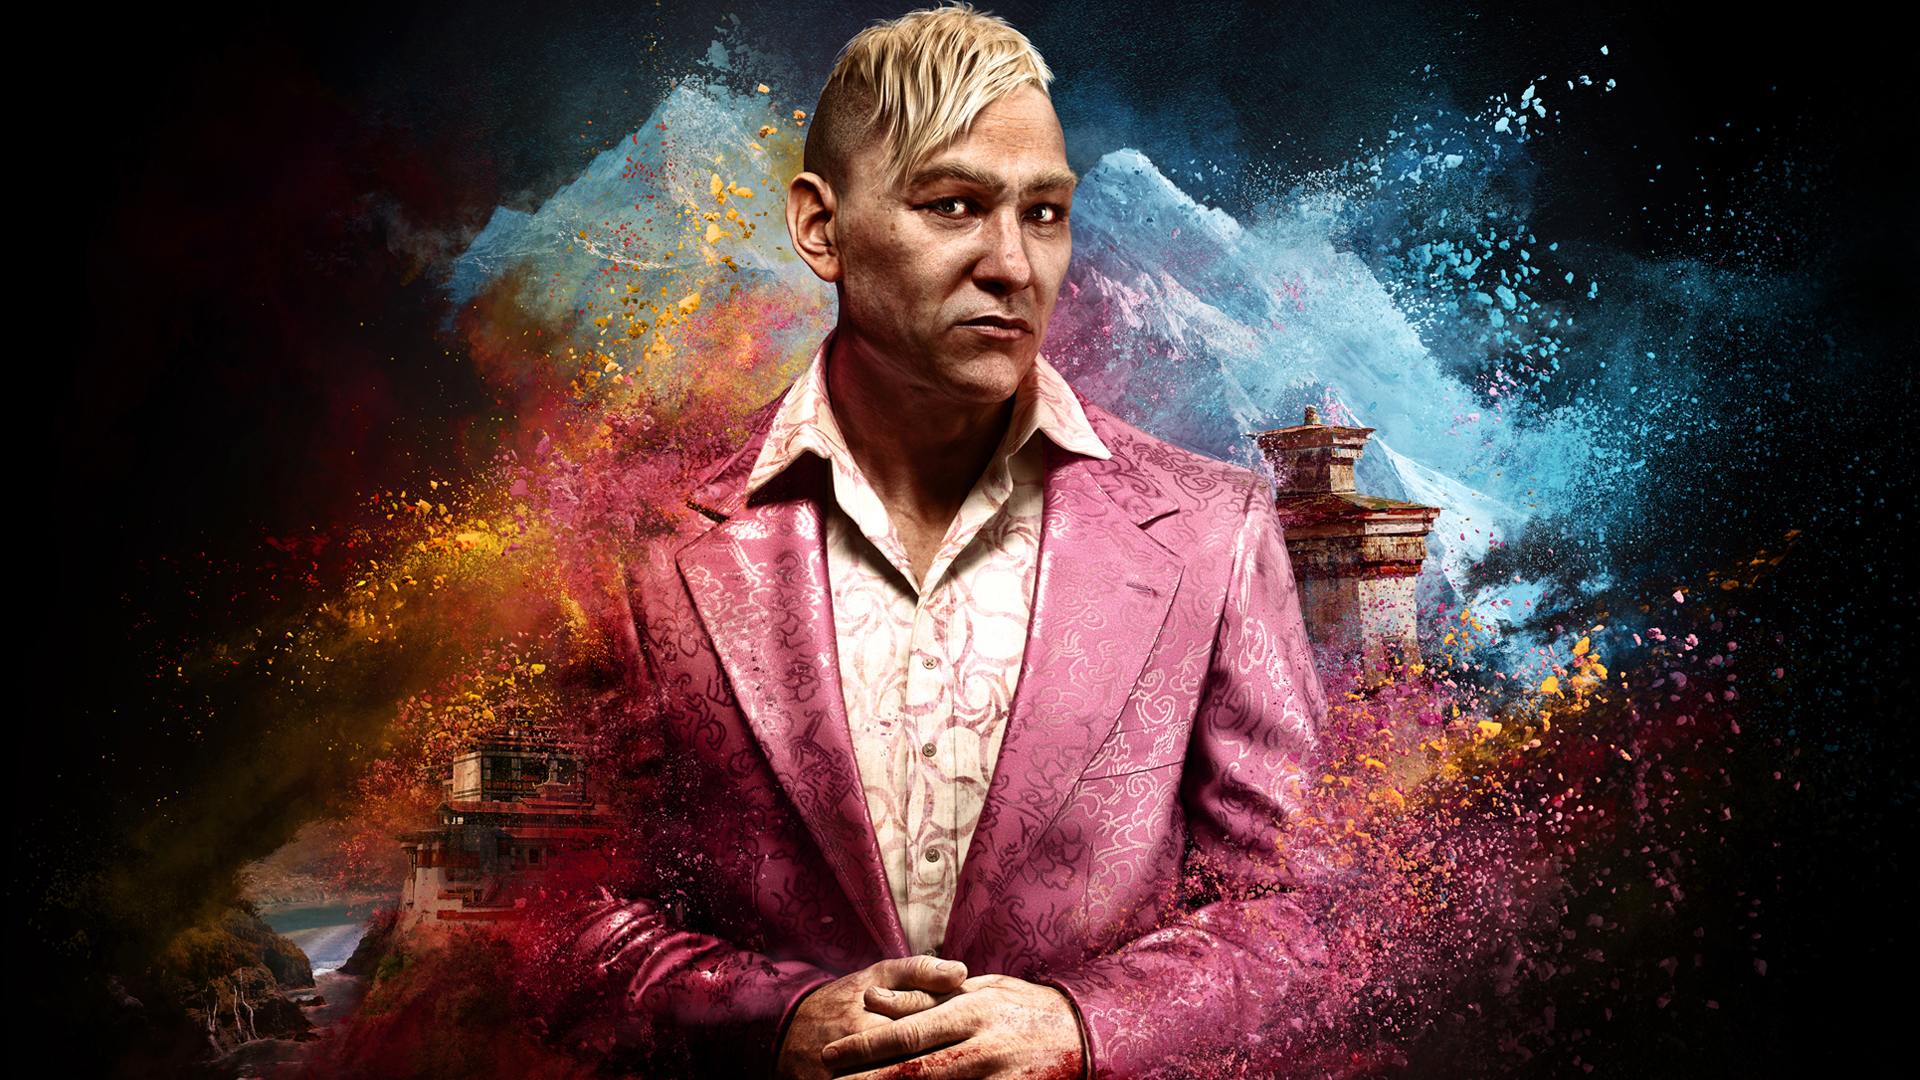 1080p far cry 4 hd wallpaper